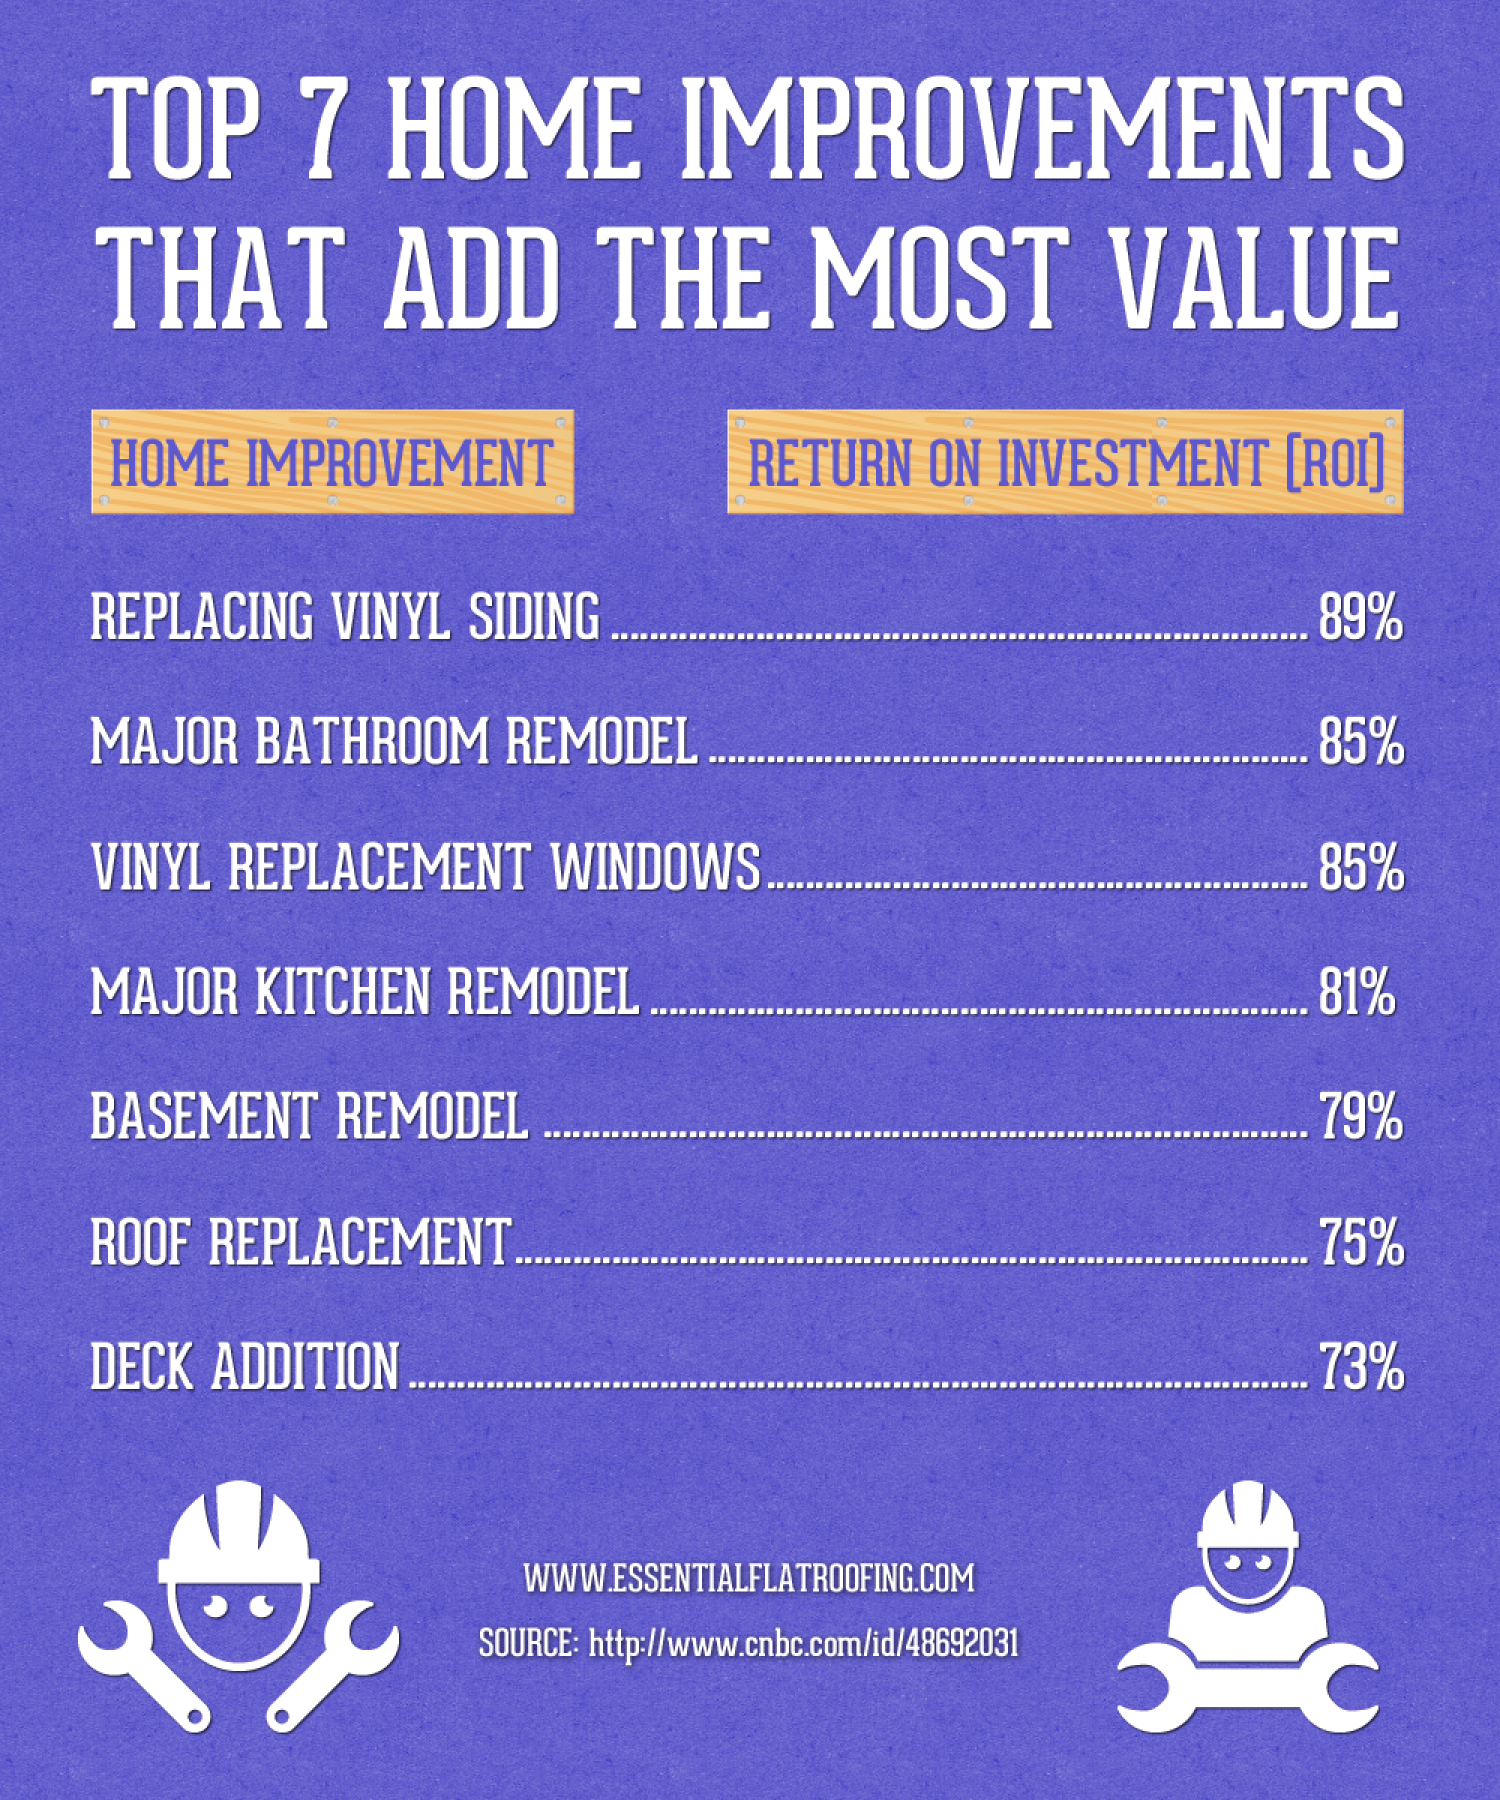 Top 7 Home Improvements That Add The Most Value